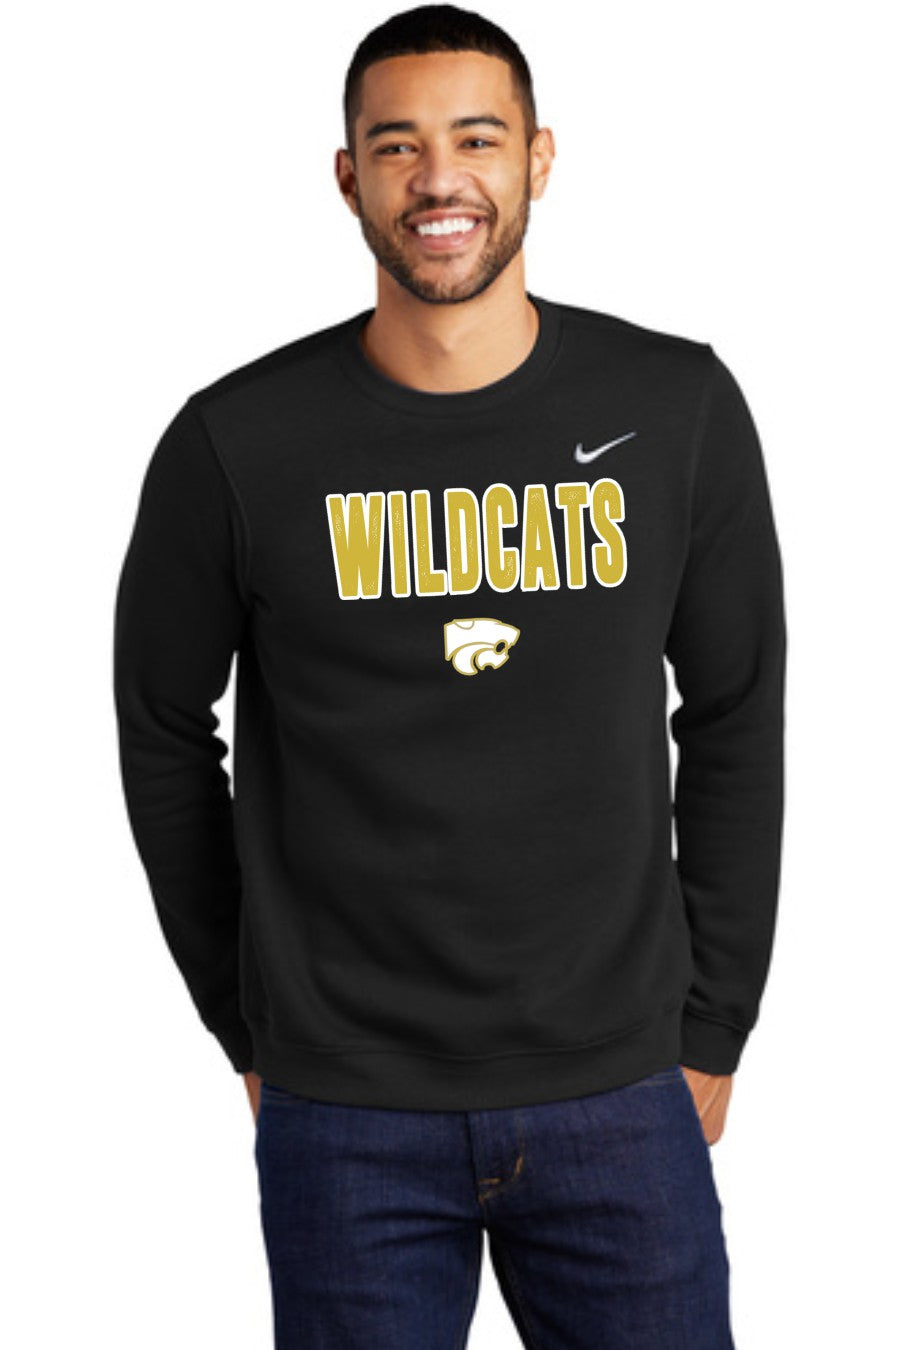 Wildcats - GOLD/WHITE - Nike Crew Neck Sweatshirt